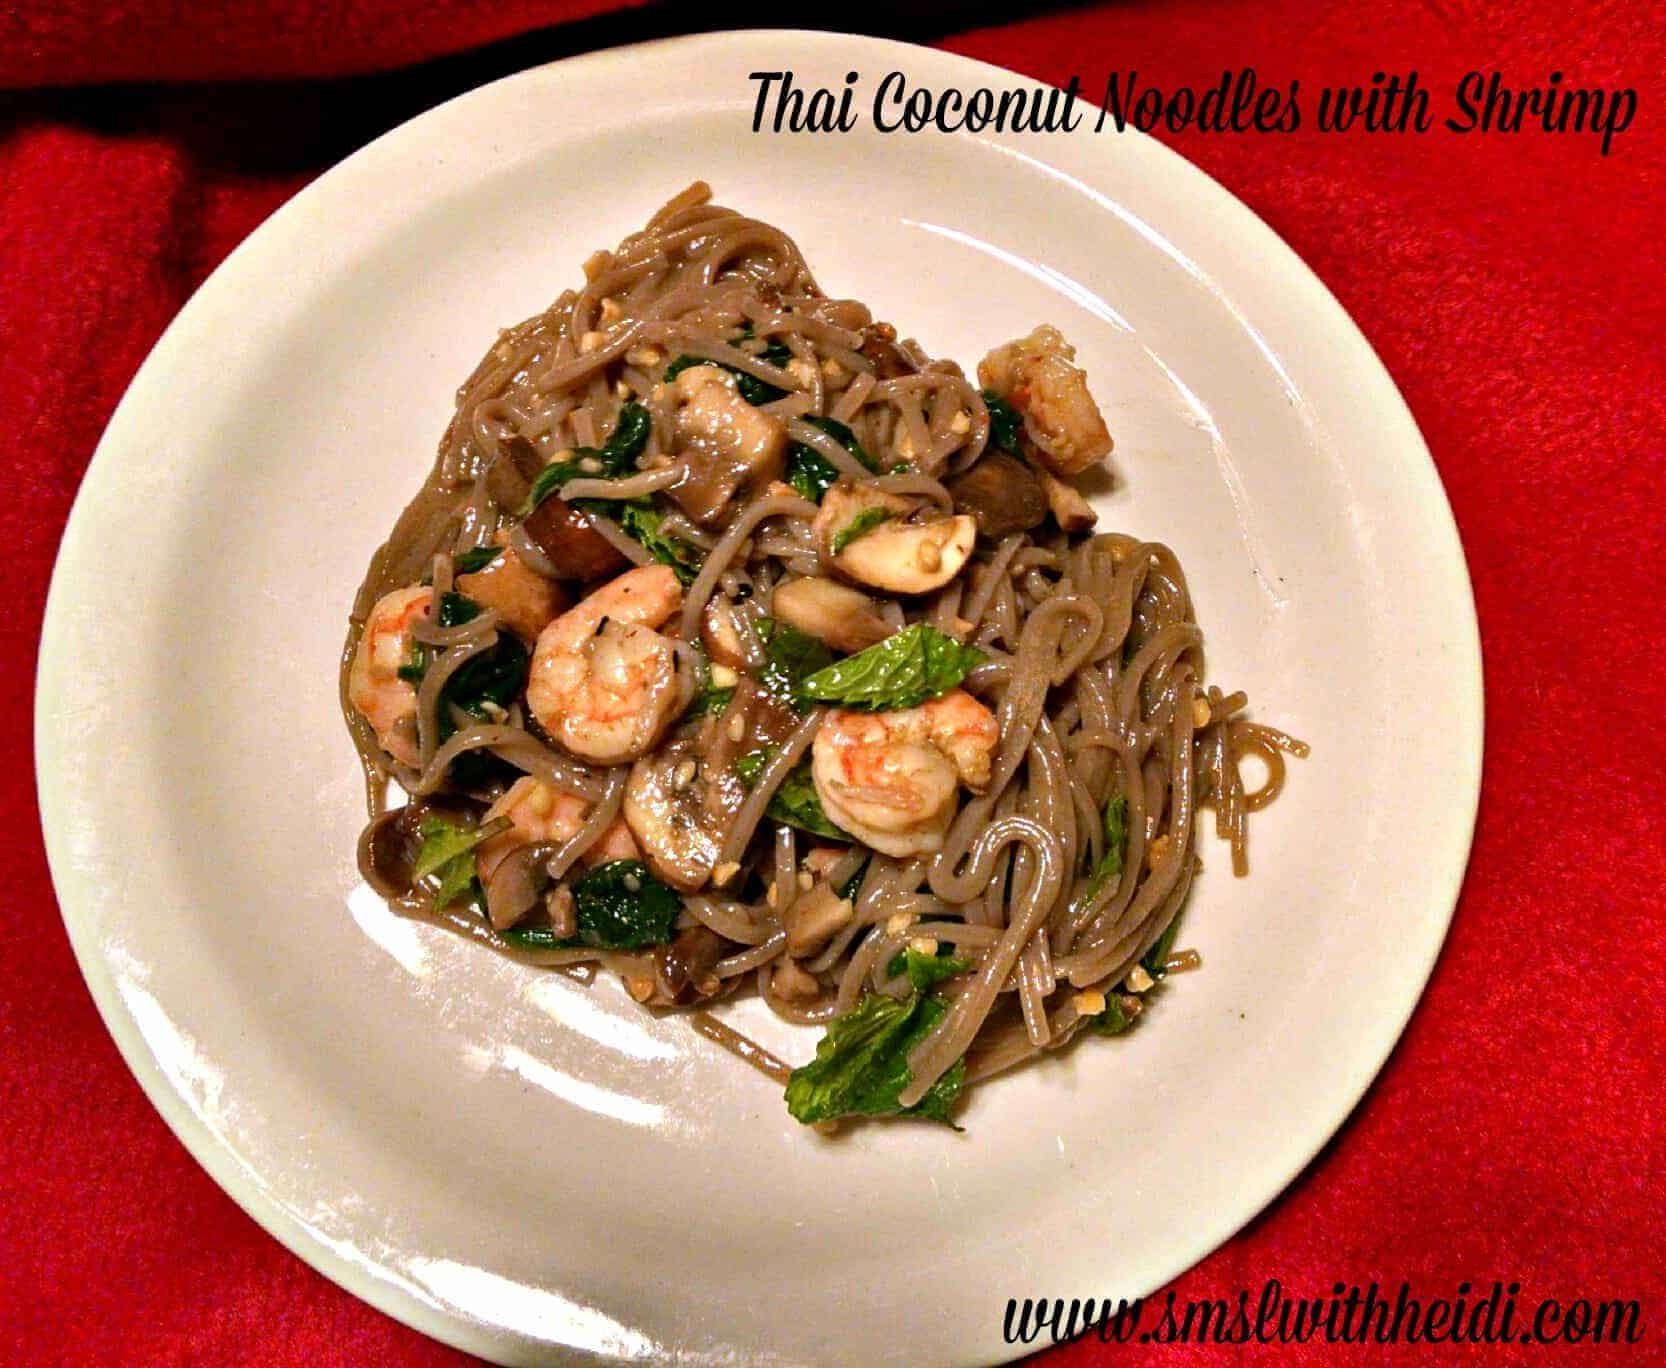 Thai Coconut Noodles with Shrimp